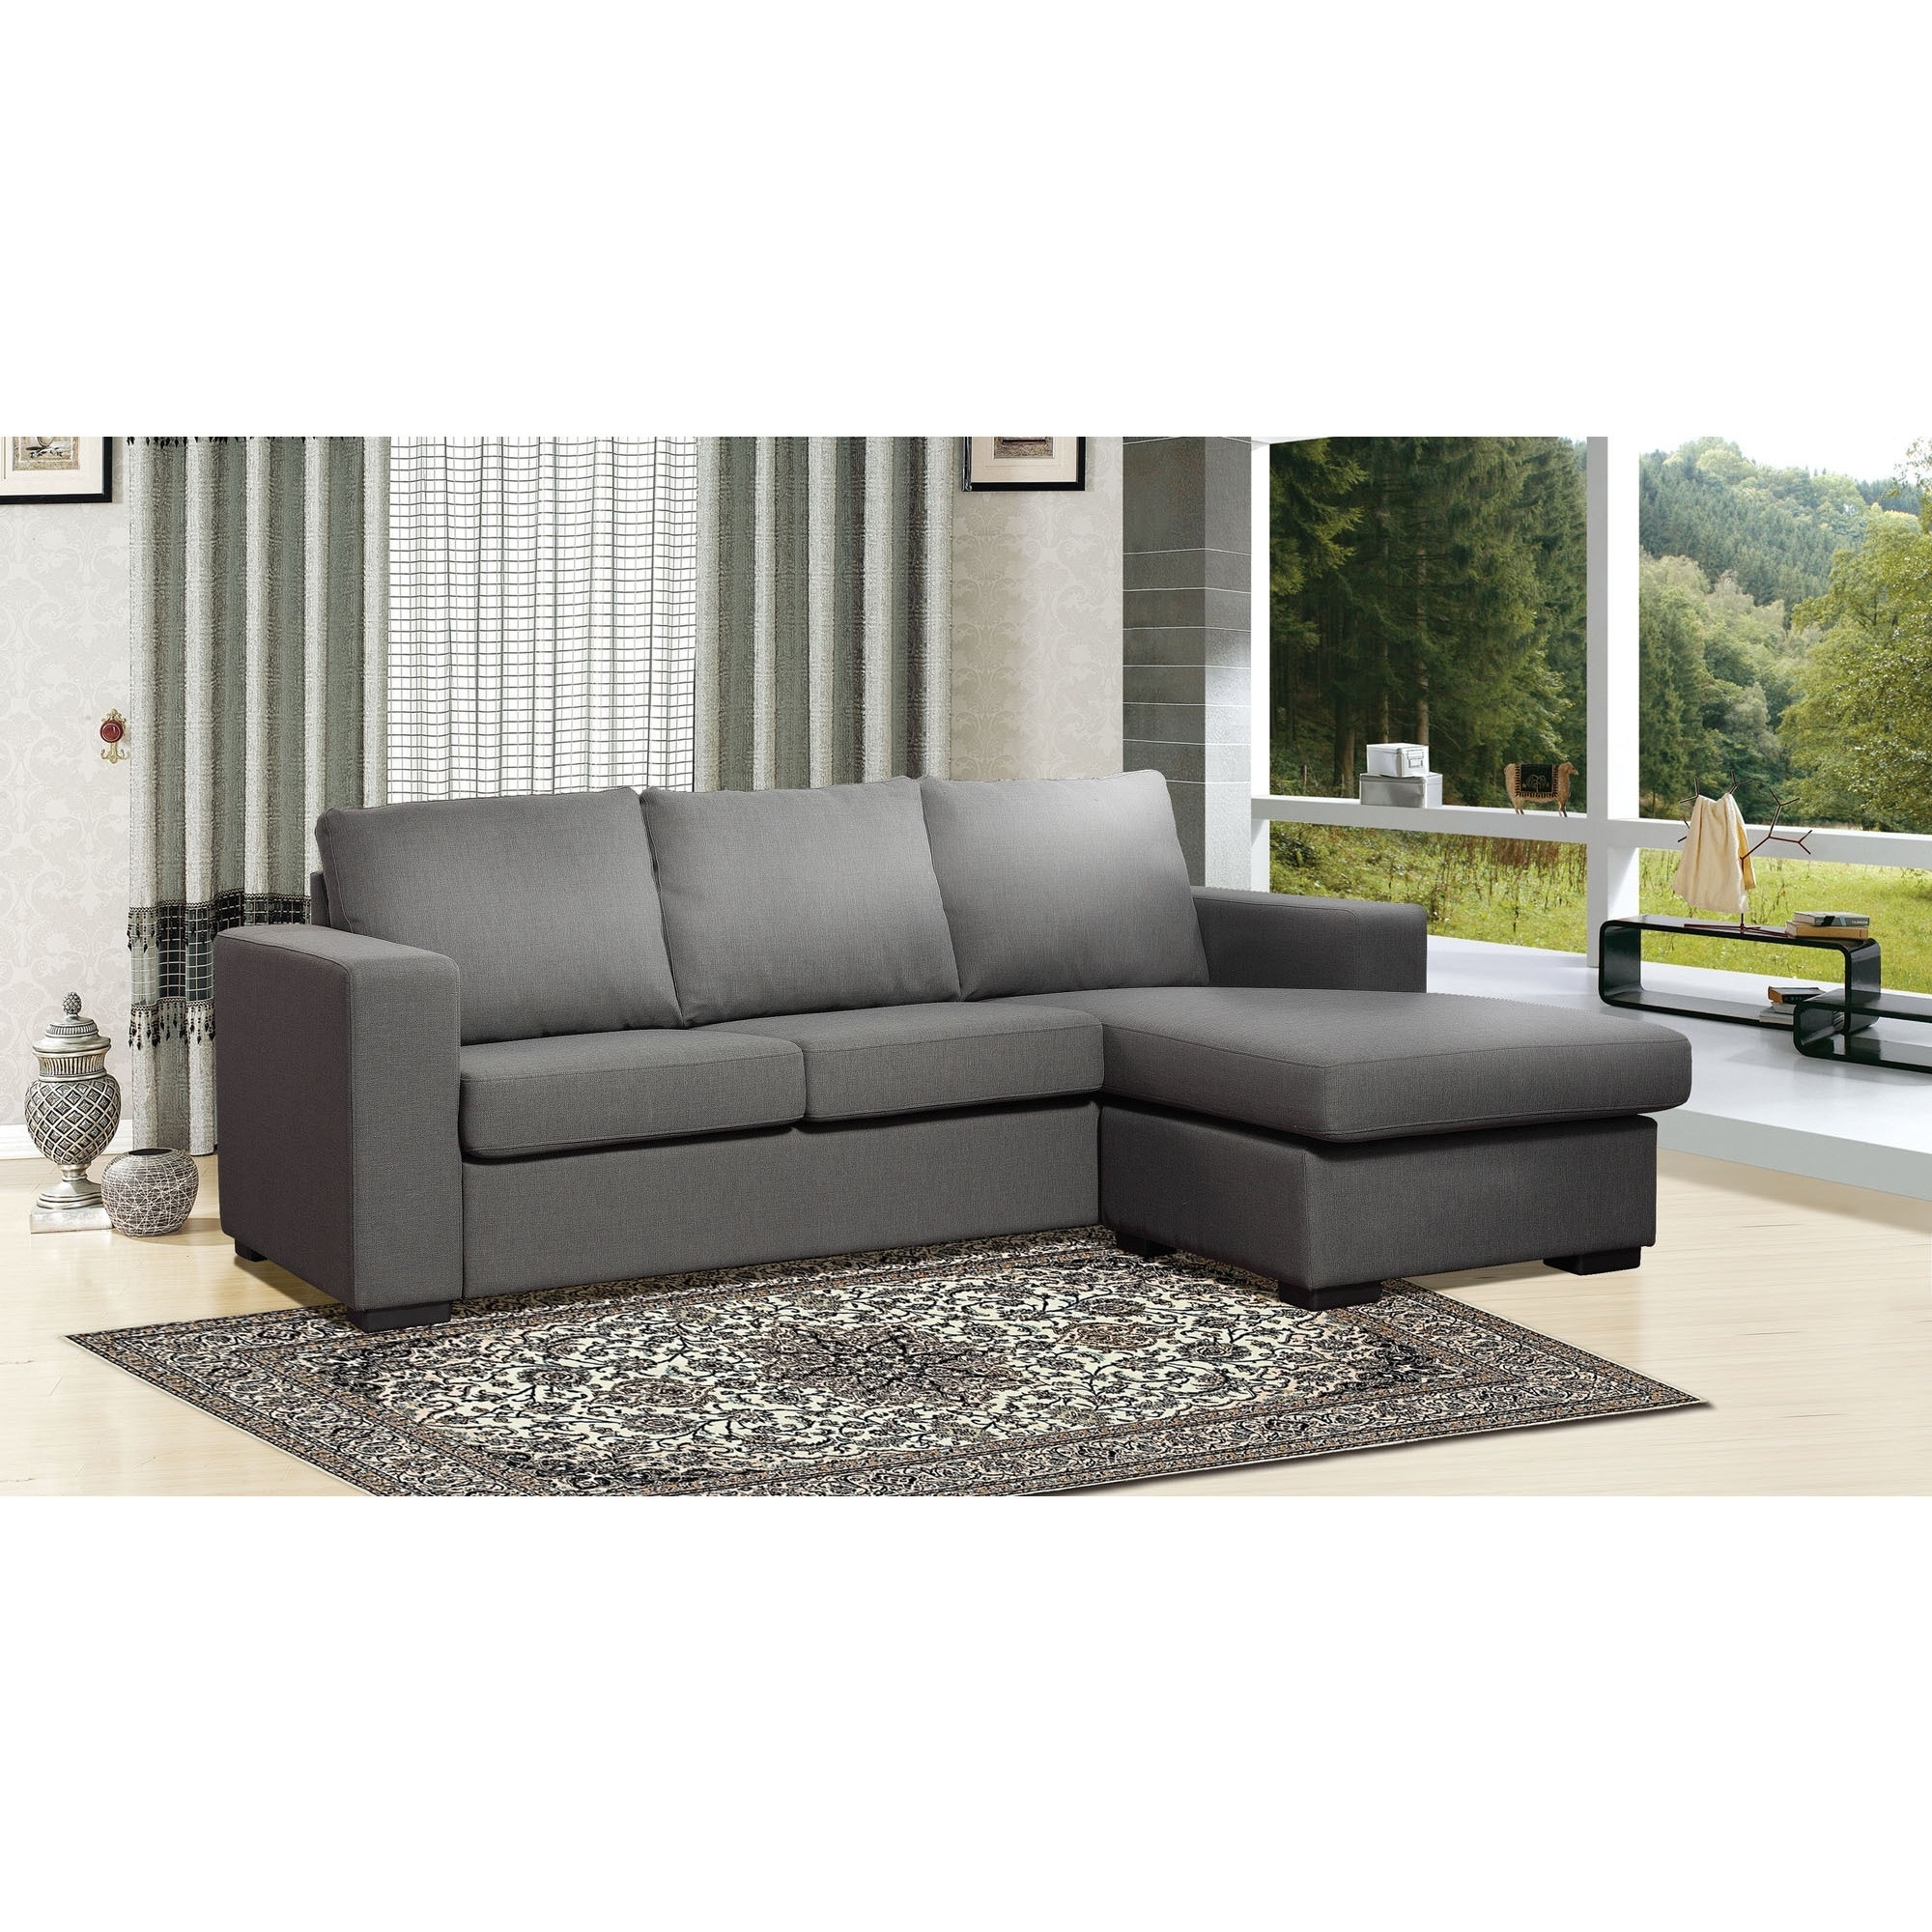 Charcoal Gray Sectional Sofas With Chaise Lounge For Most Up To Date Alenya 3 Piece Sectional Quartz Fabric Reclining Sectional Grey (View 14 of 15)